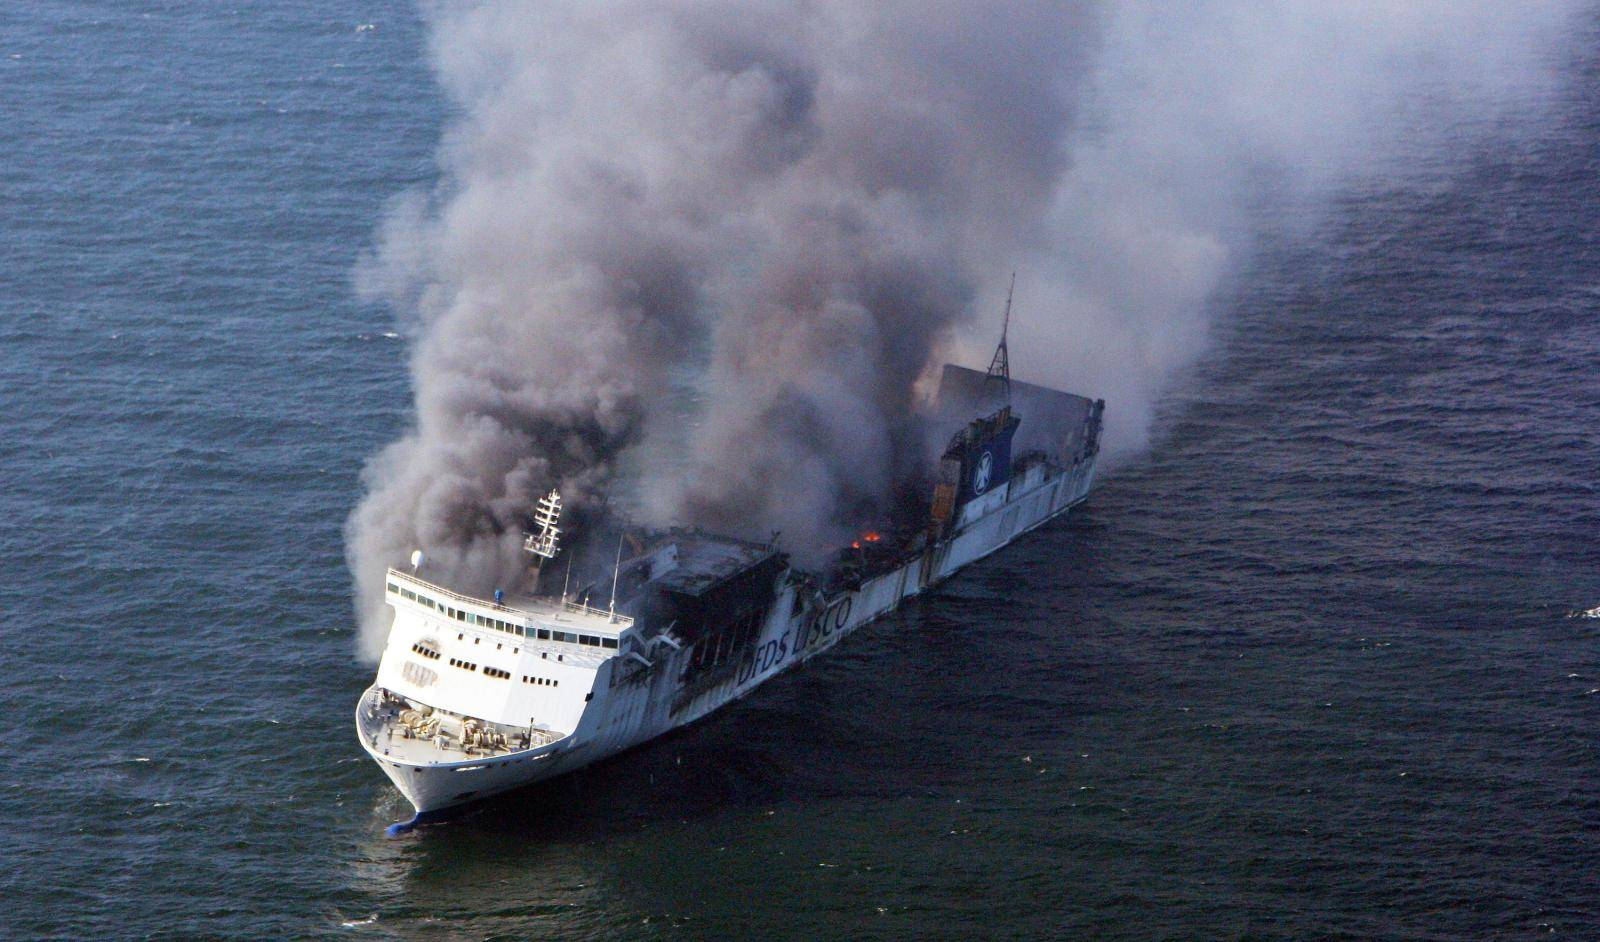 Accident on ferryboat -  'Lisco Gloria' catches fire